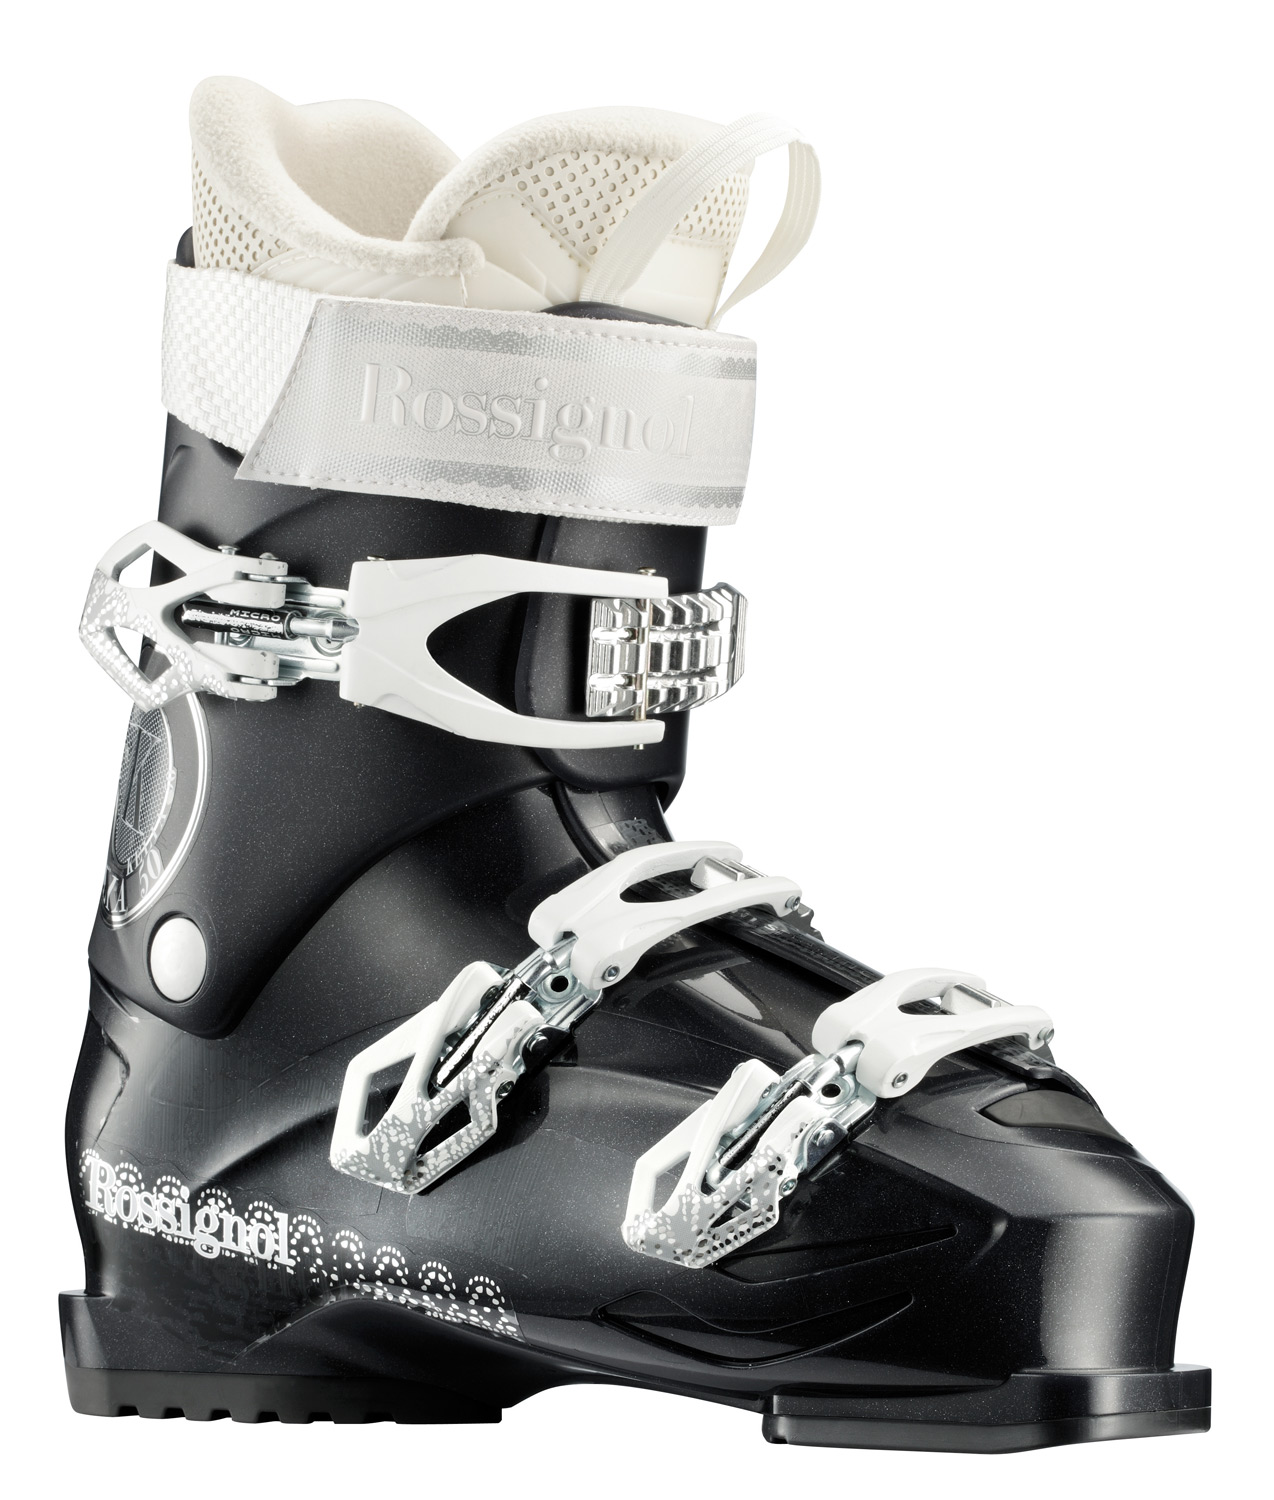 Ski Key Features of the Rossignol Kelia 50 Ski Boots: 104mm last 50 Flex index Sensor Shell Sensor Fit Liner 3-Buckle Design Women's F.I.T. Easy Entry Concept Neutral Stance Available Sizes: 22.5-27.5 (Half-sizes) - $164.95